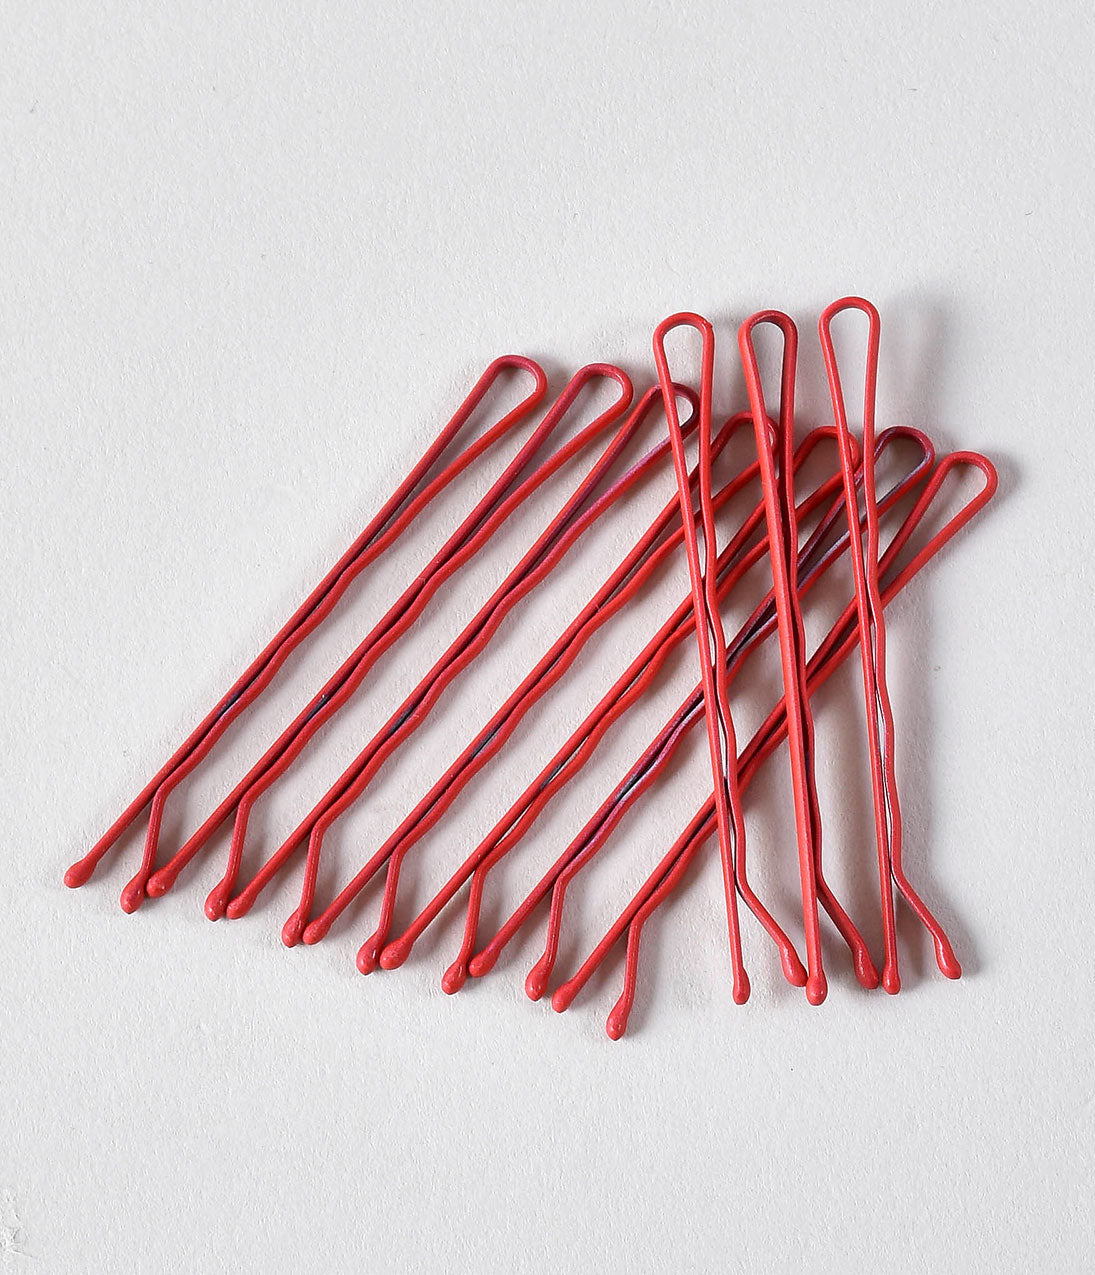 1940s Hairstyles- History of Women's Hairstyles Retro Style Red Matte Bobby Pins $10.00 AT vintagedancer.com